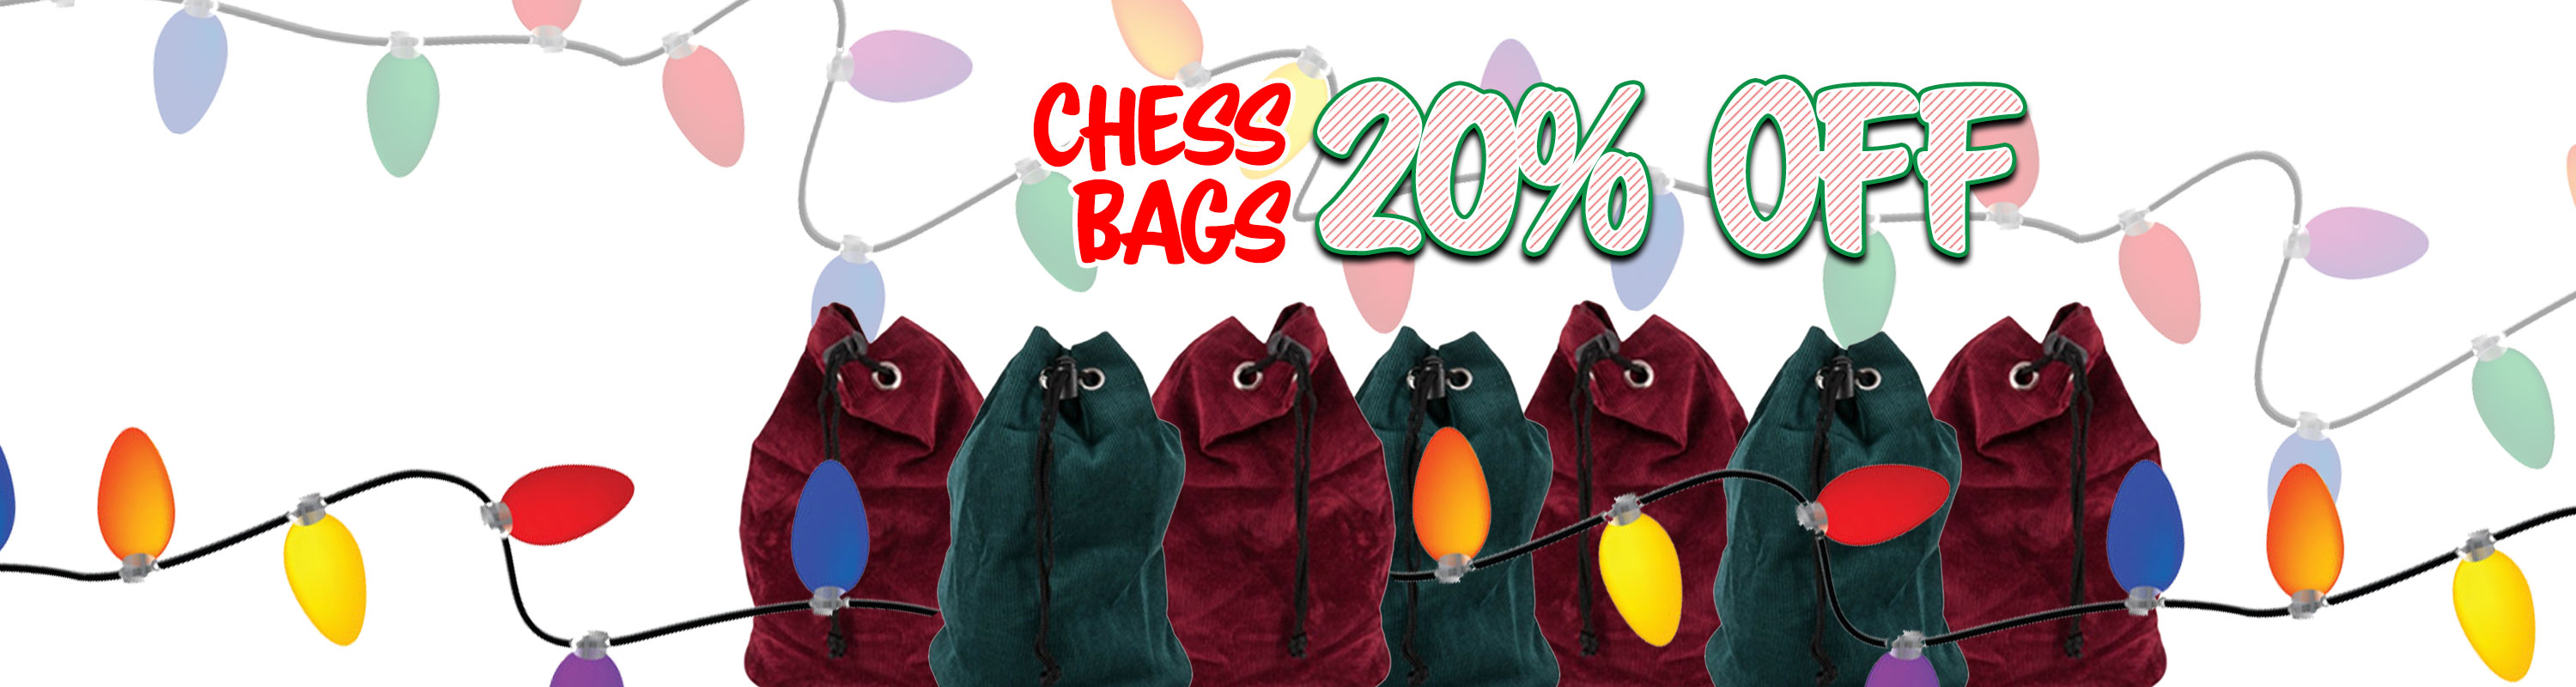 Chess Bags - 20% Off